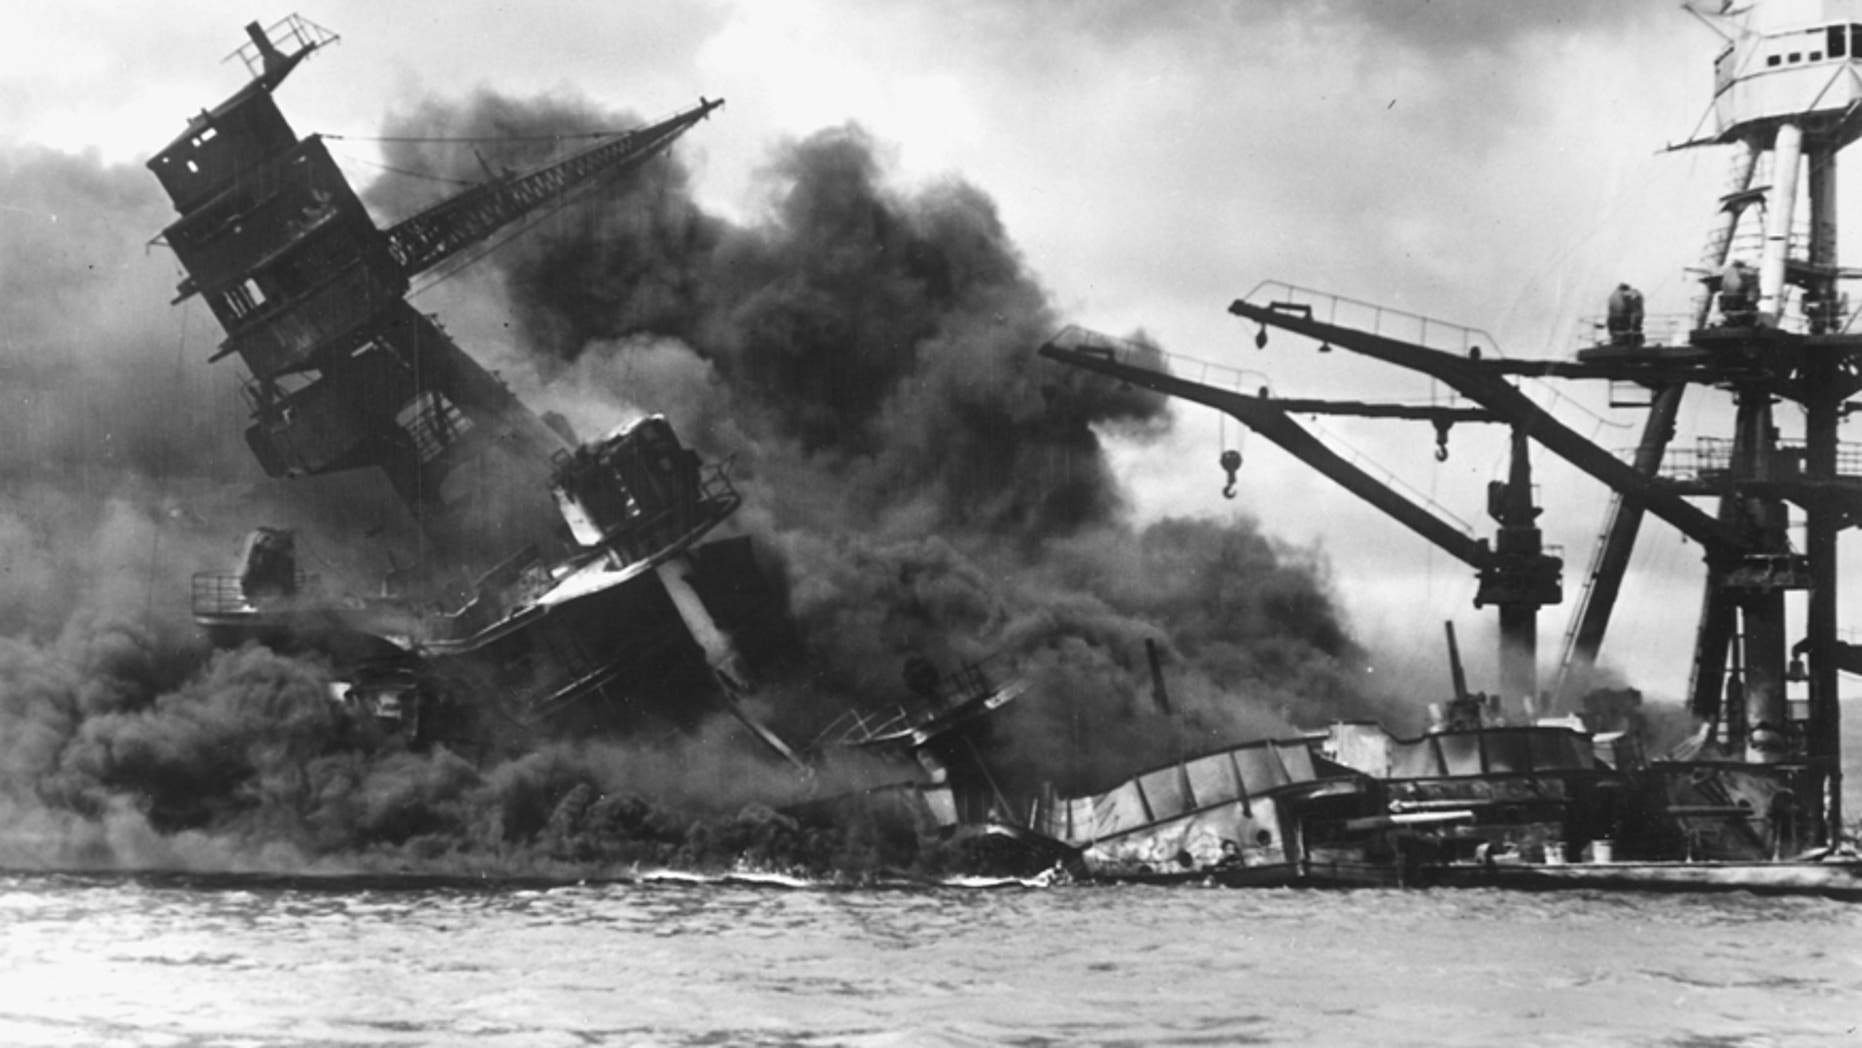 Dec. 7, 1941: The battleship USS Arizona sinks after being hit by a Japanese air attack on Pearl Harbor, Hawaii.